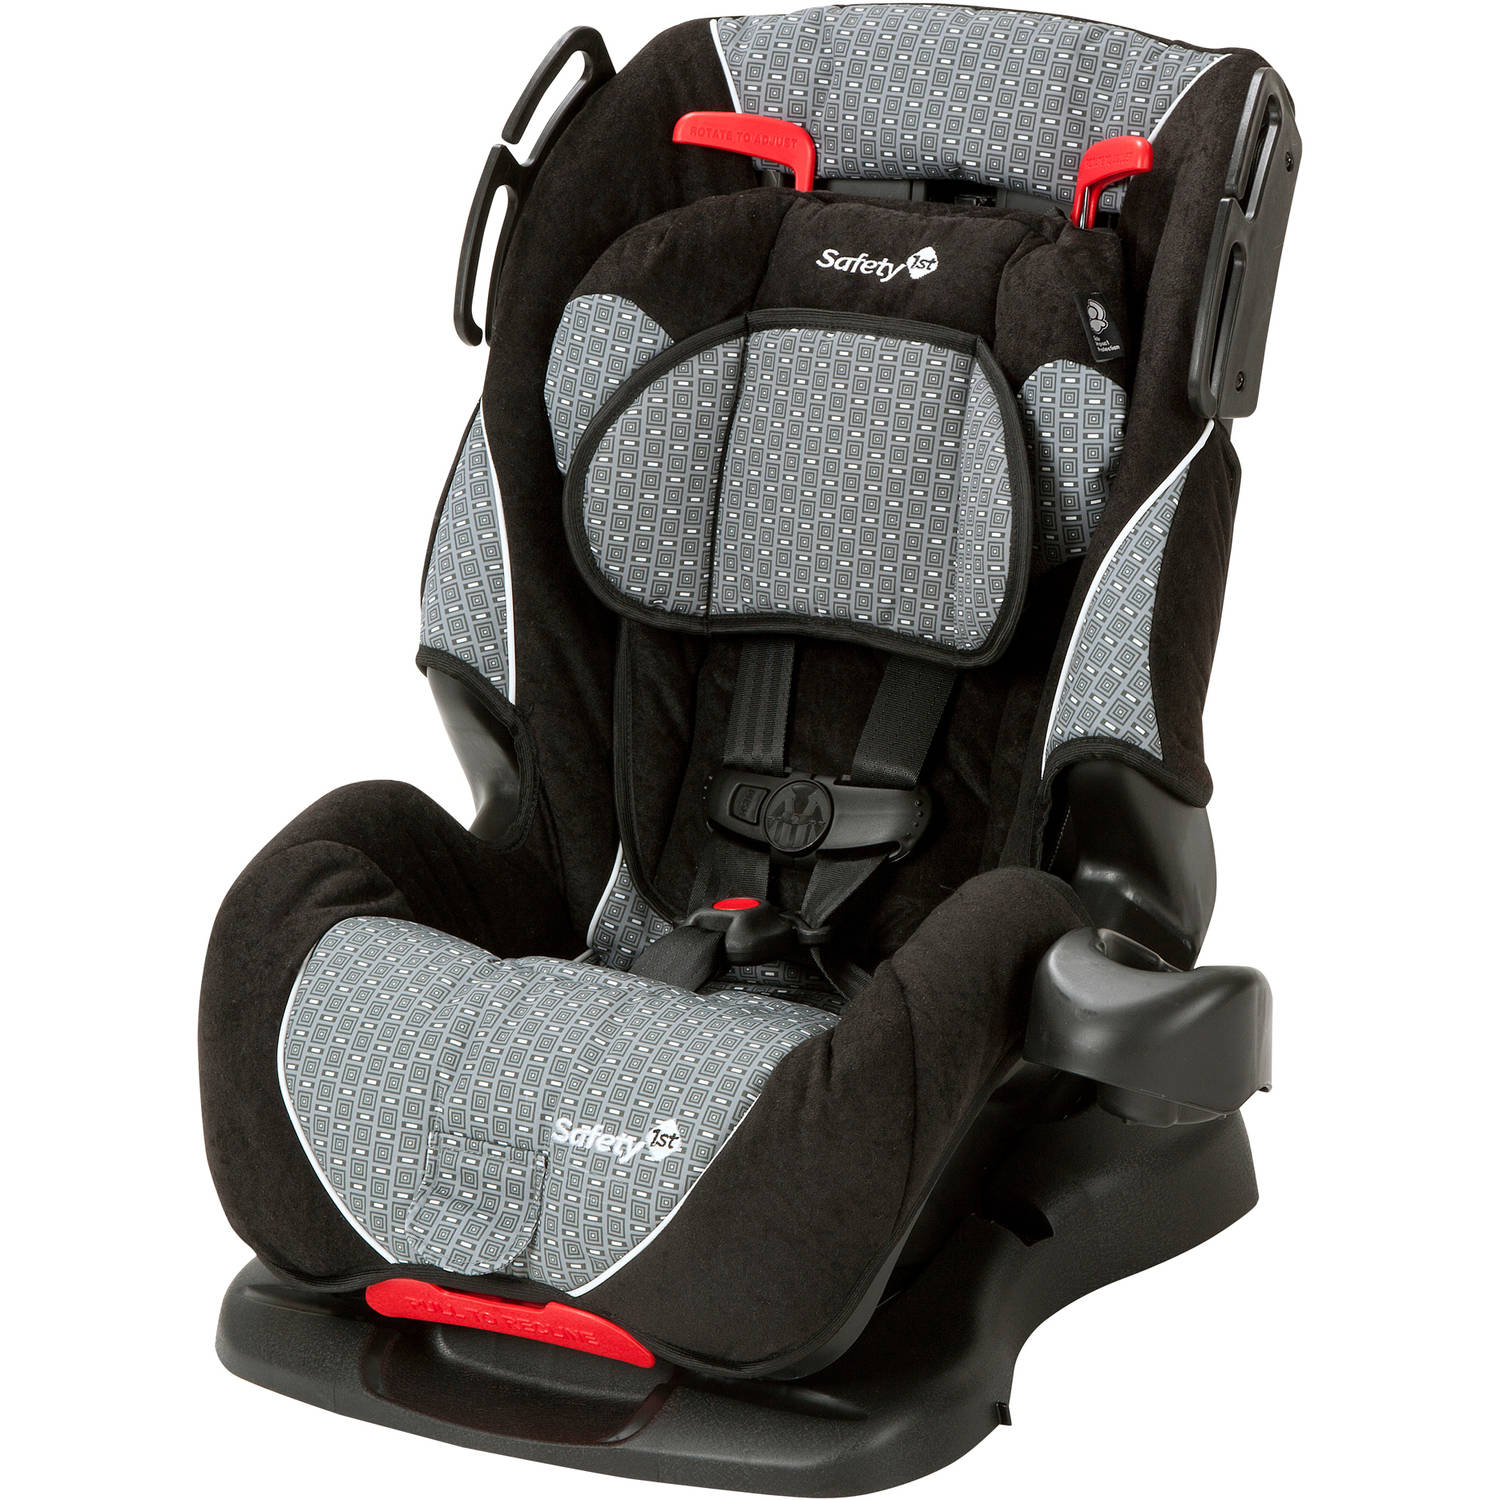 Safety 1st All-in-One Convertible Car Seat, Colman